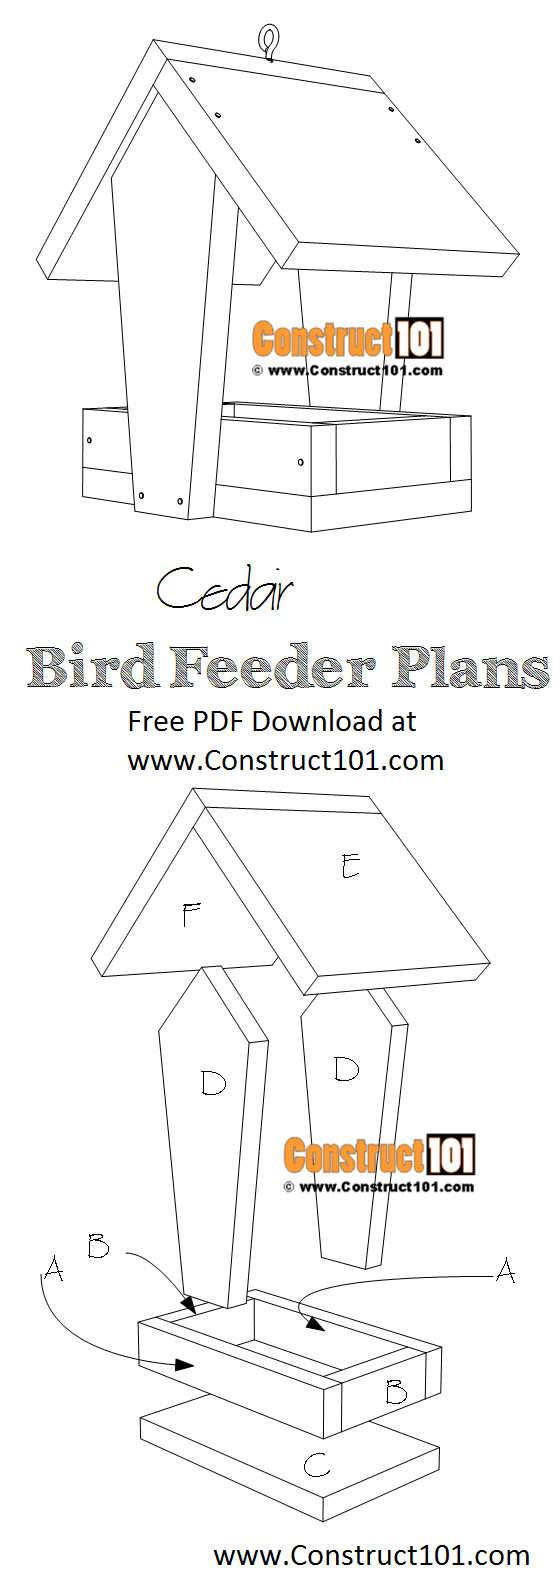 Cedar bird feeder plans - free PDF download, material list, at Construct101.